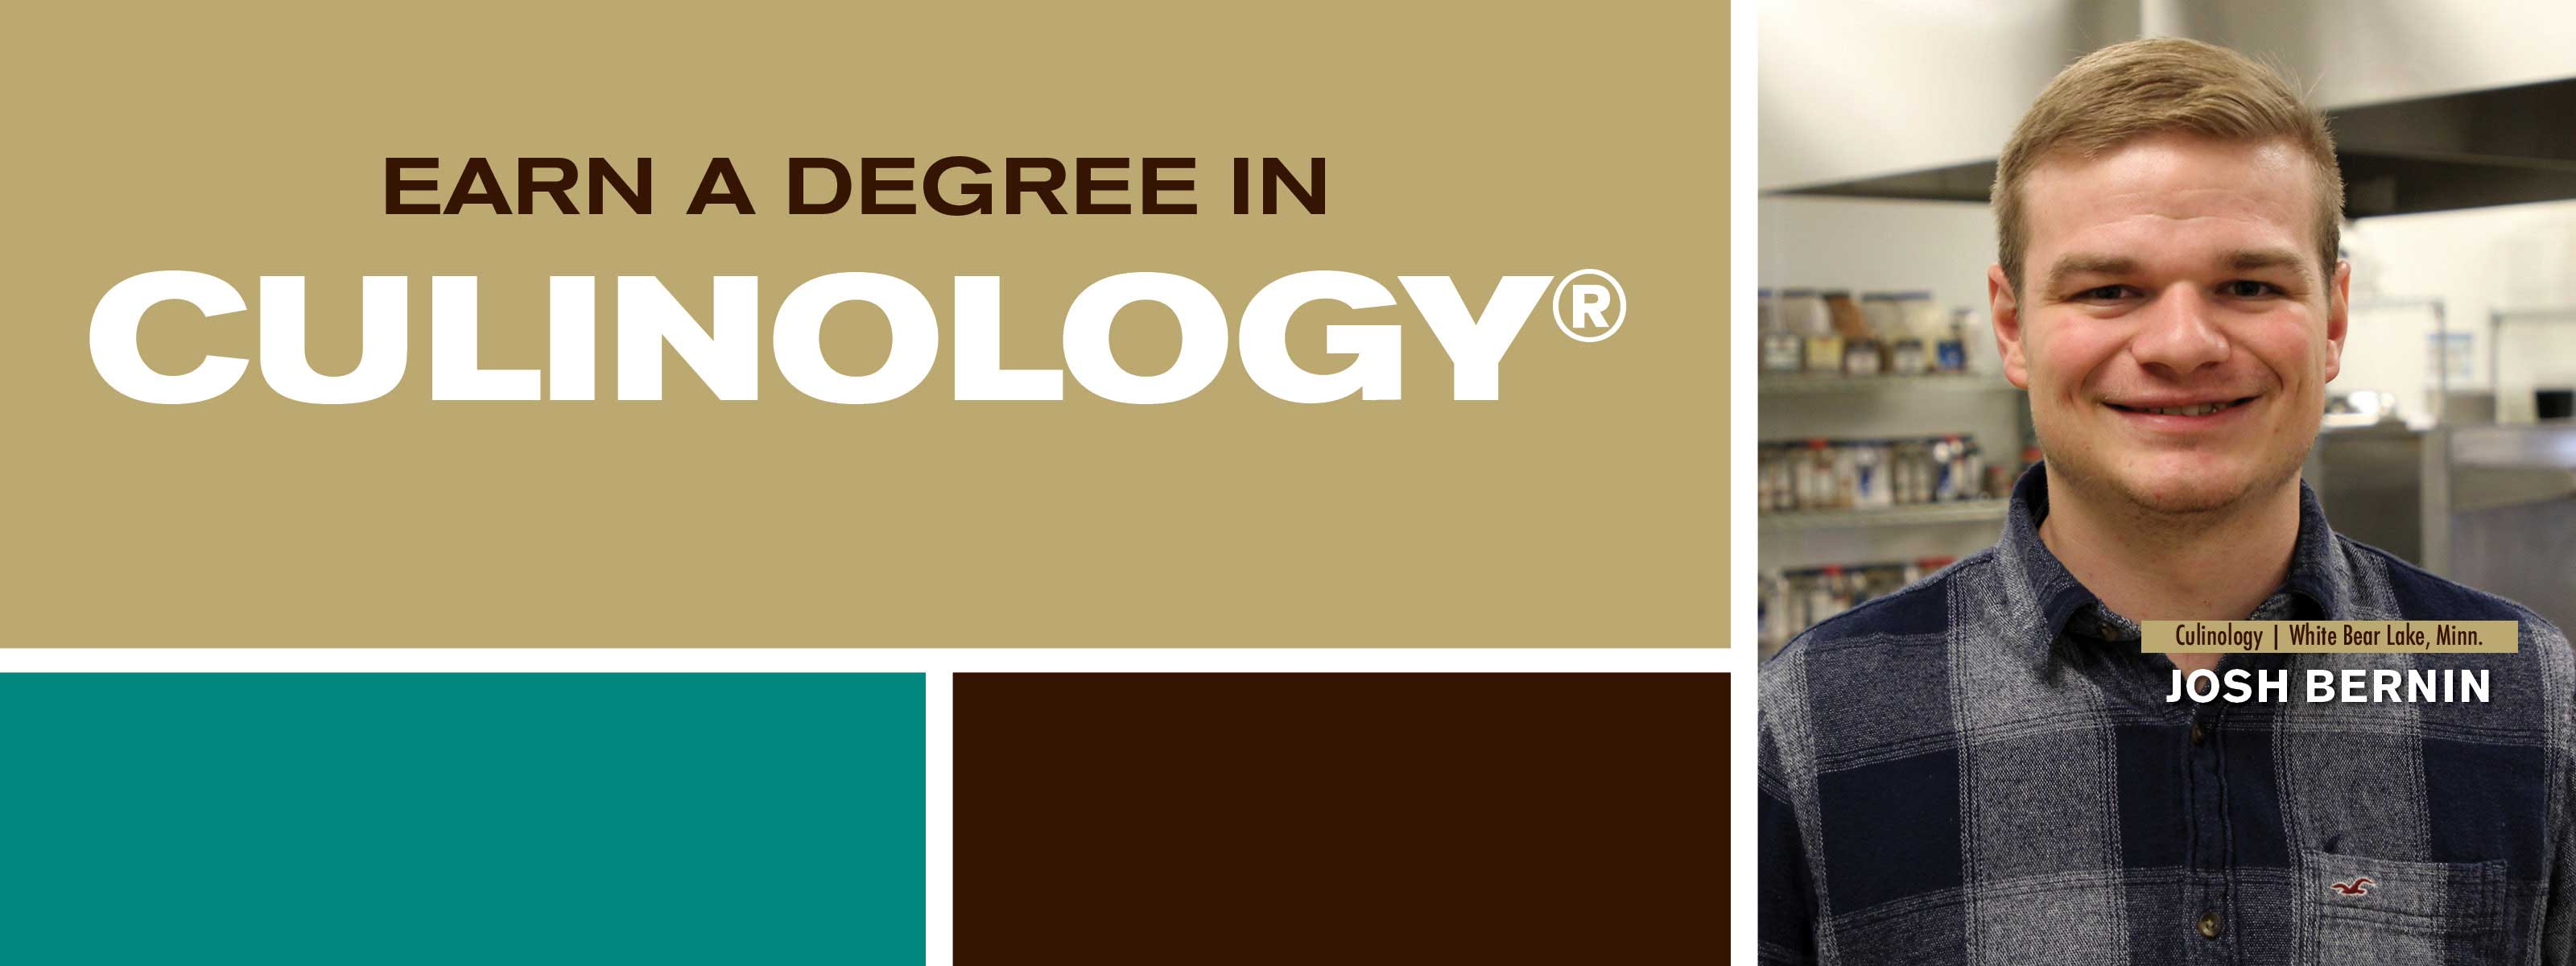 Earn A Degree In Culinology - Discover. Engage. Lead.